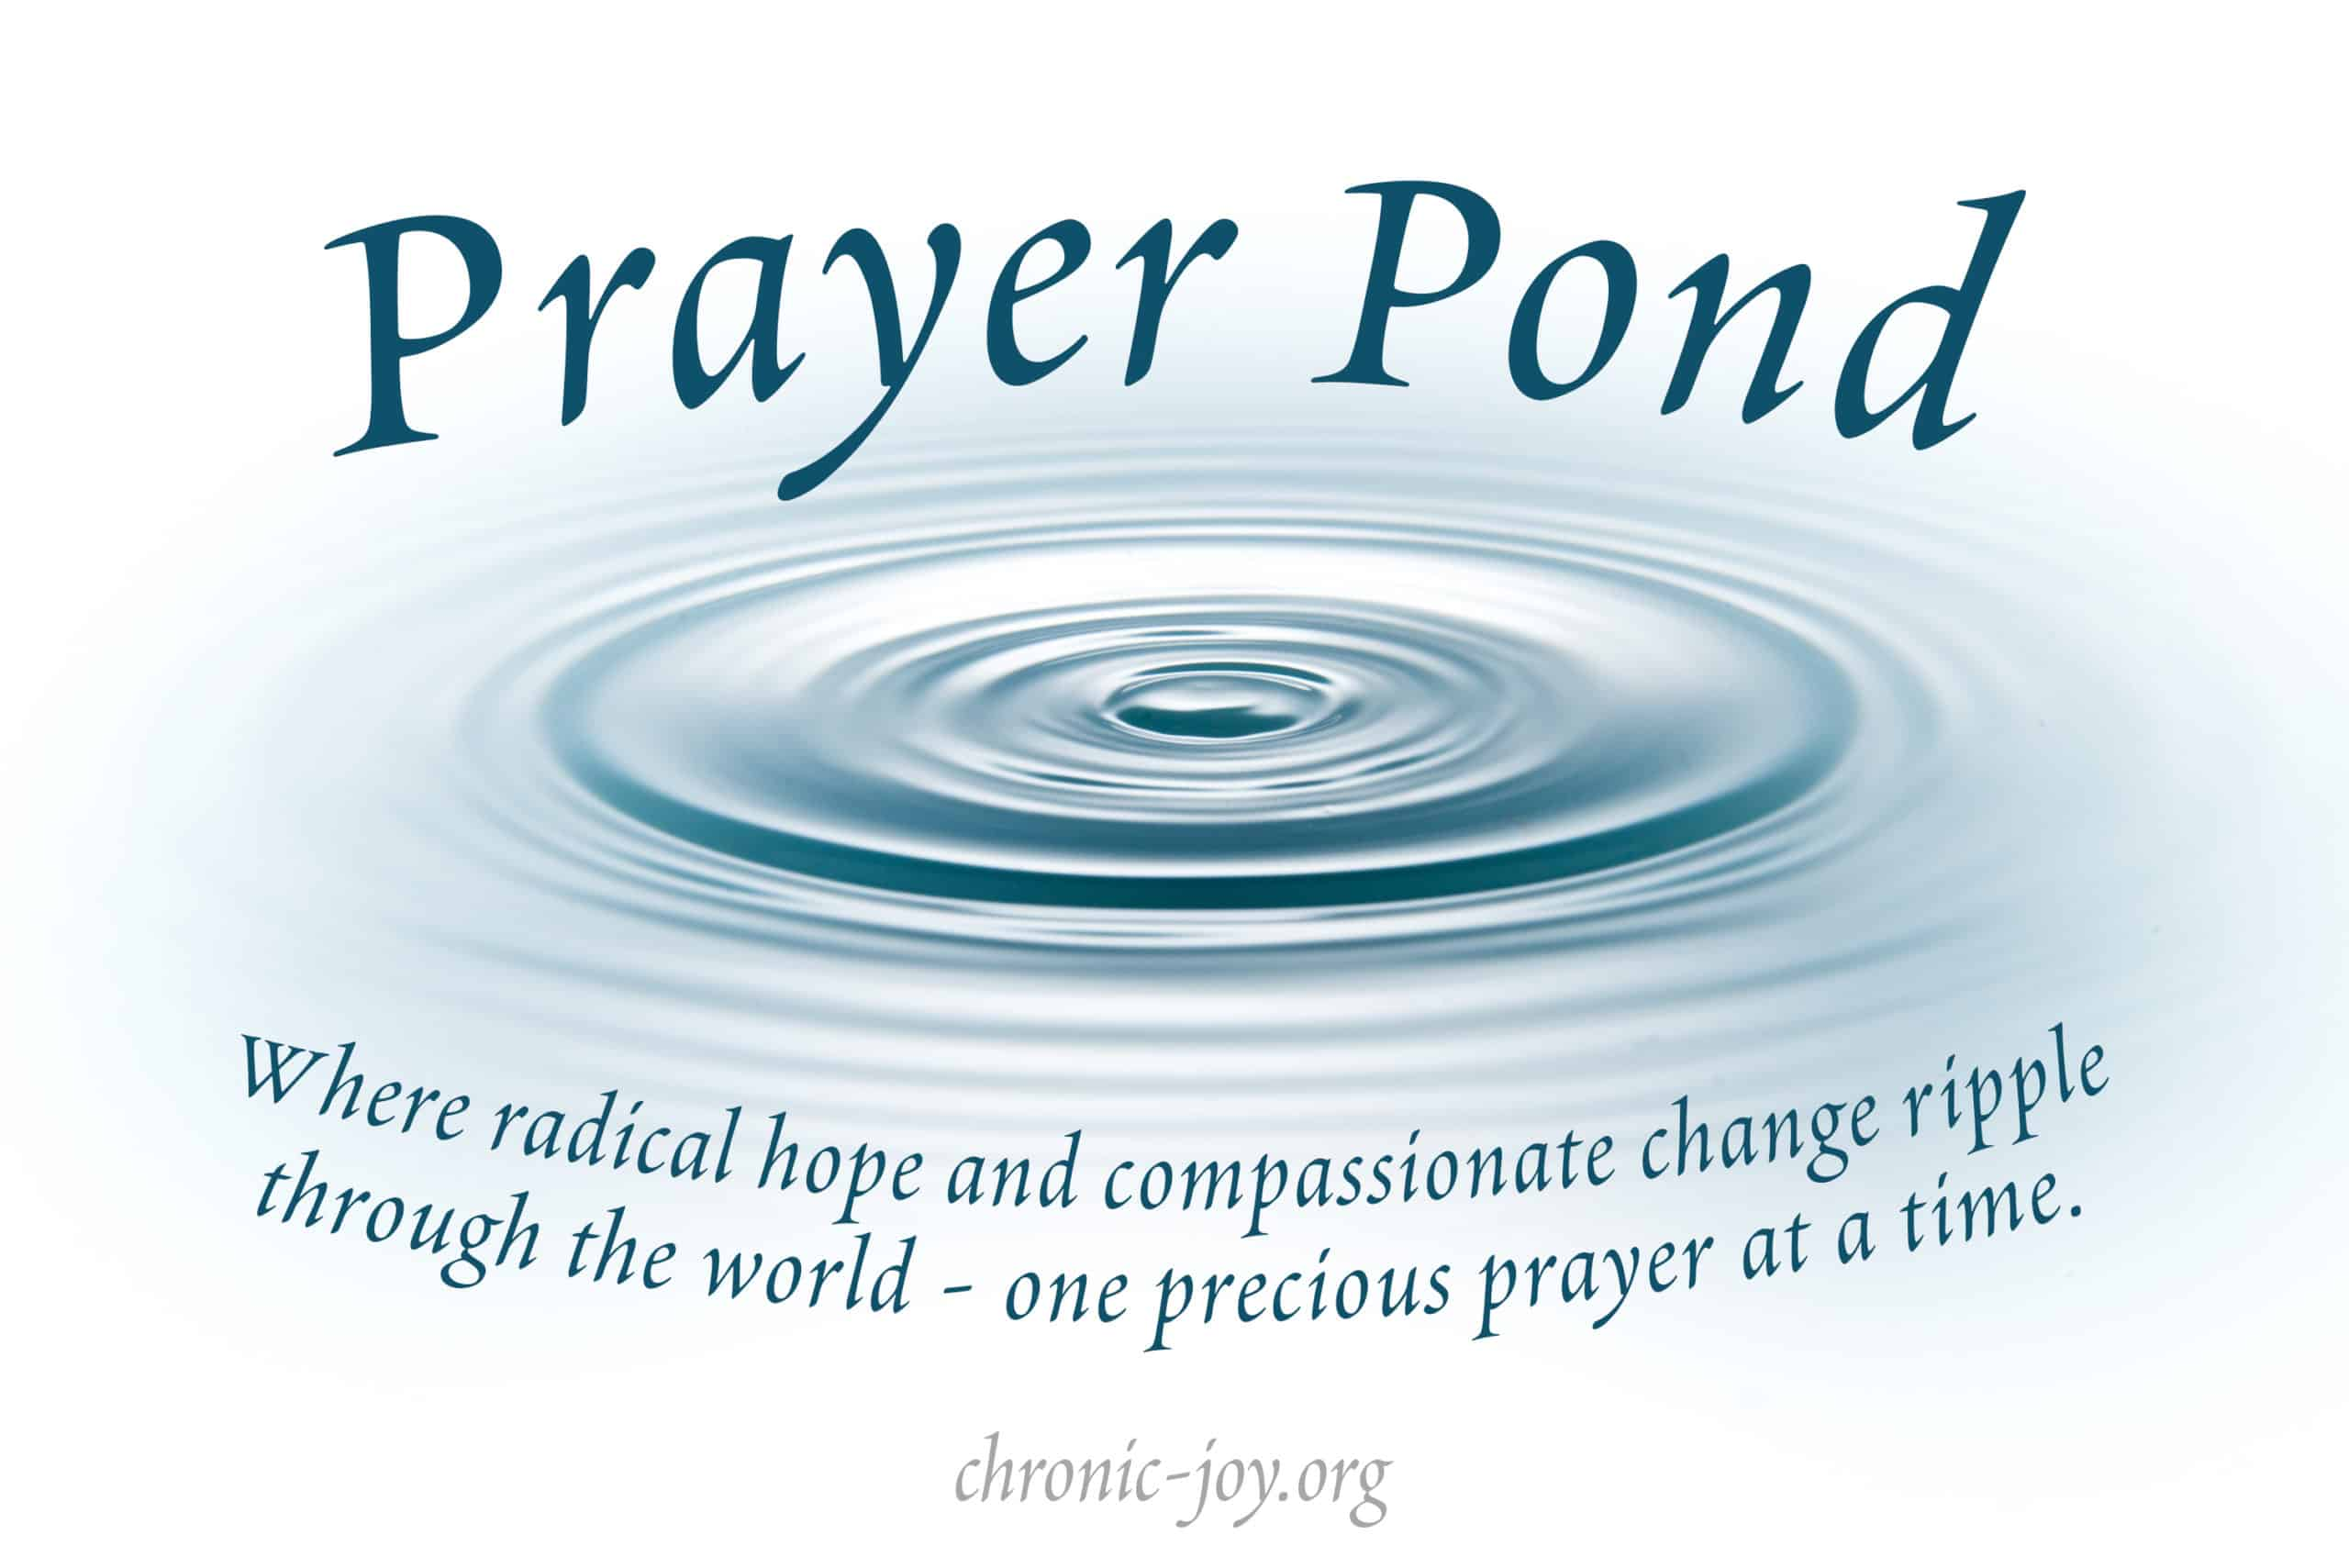 Prayer Pond